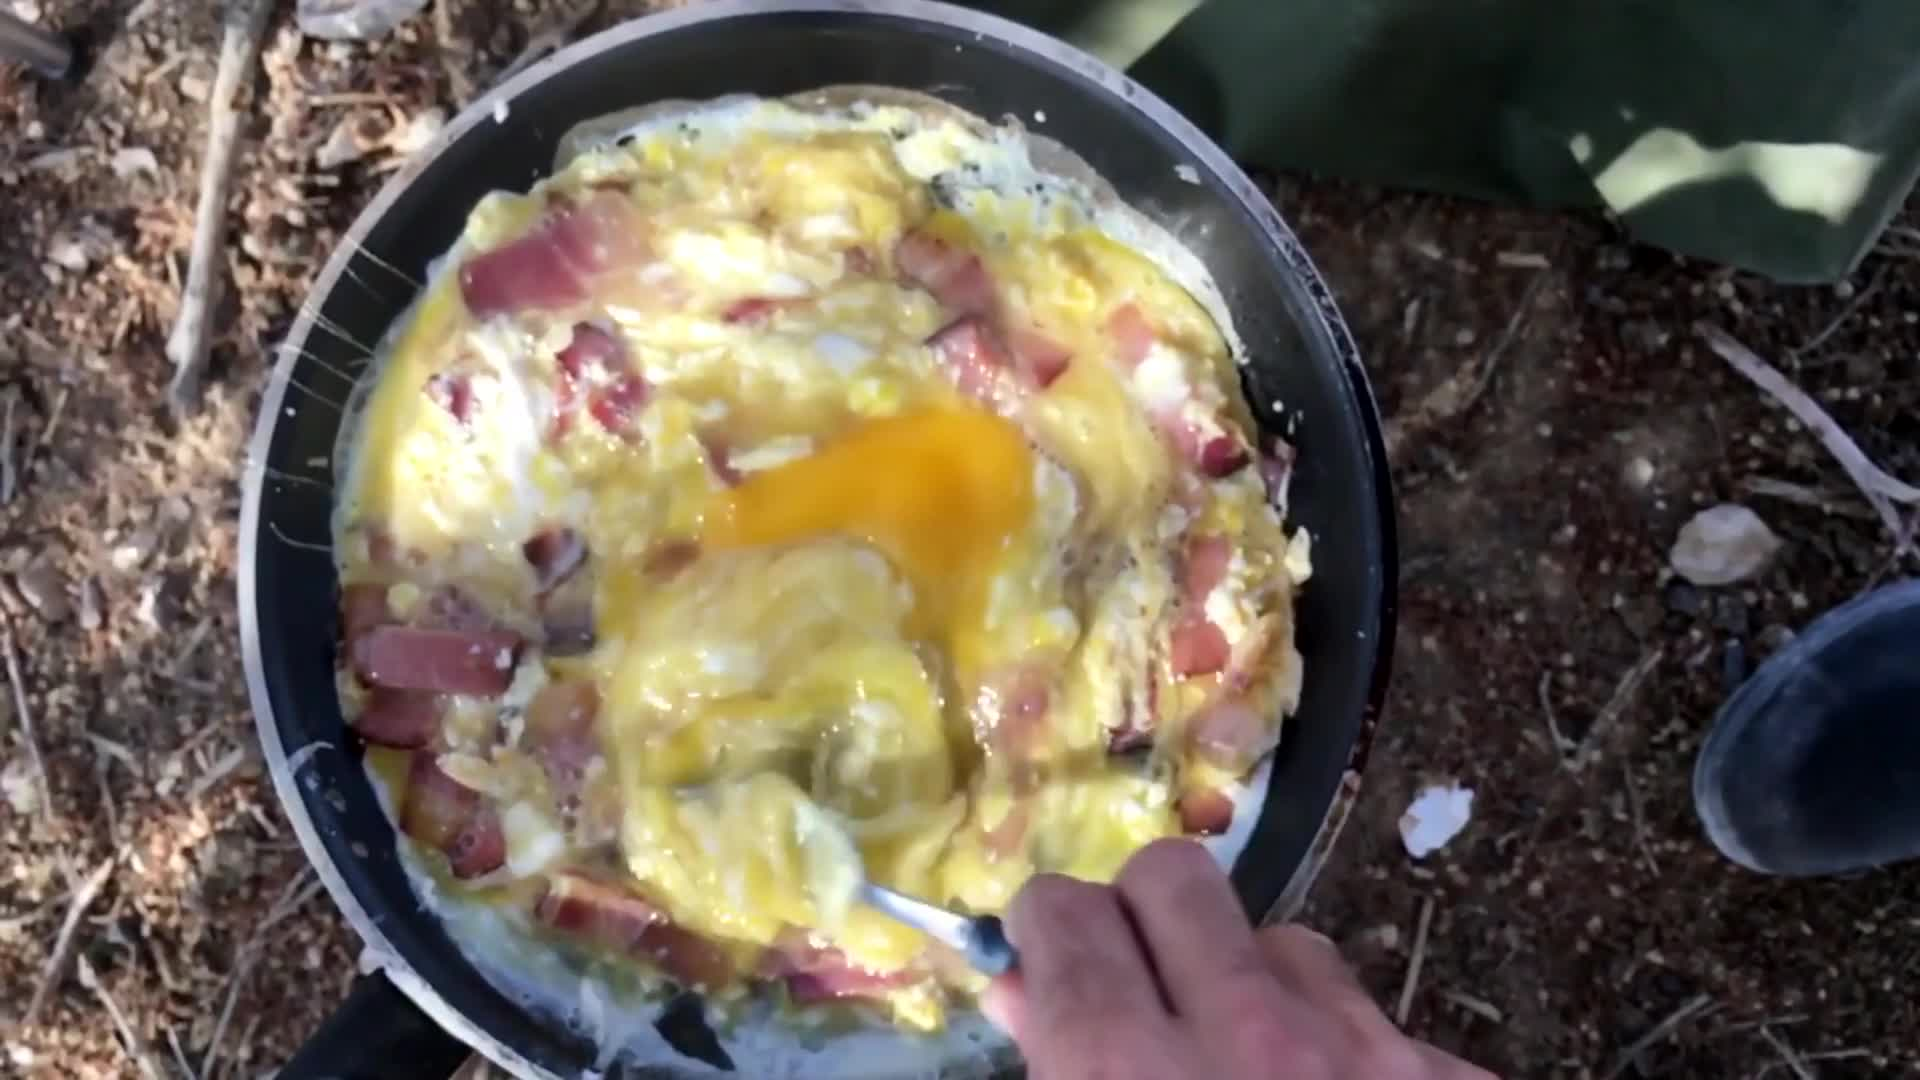 Breakfast outdoors camping food cooking